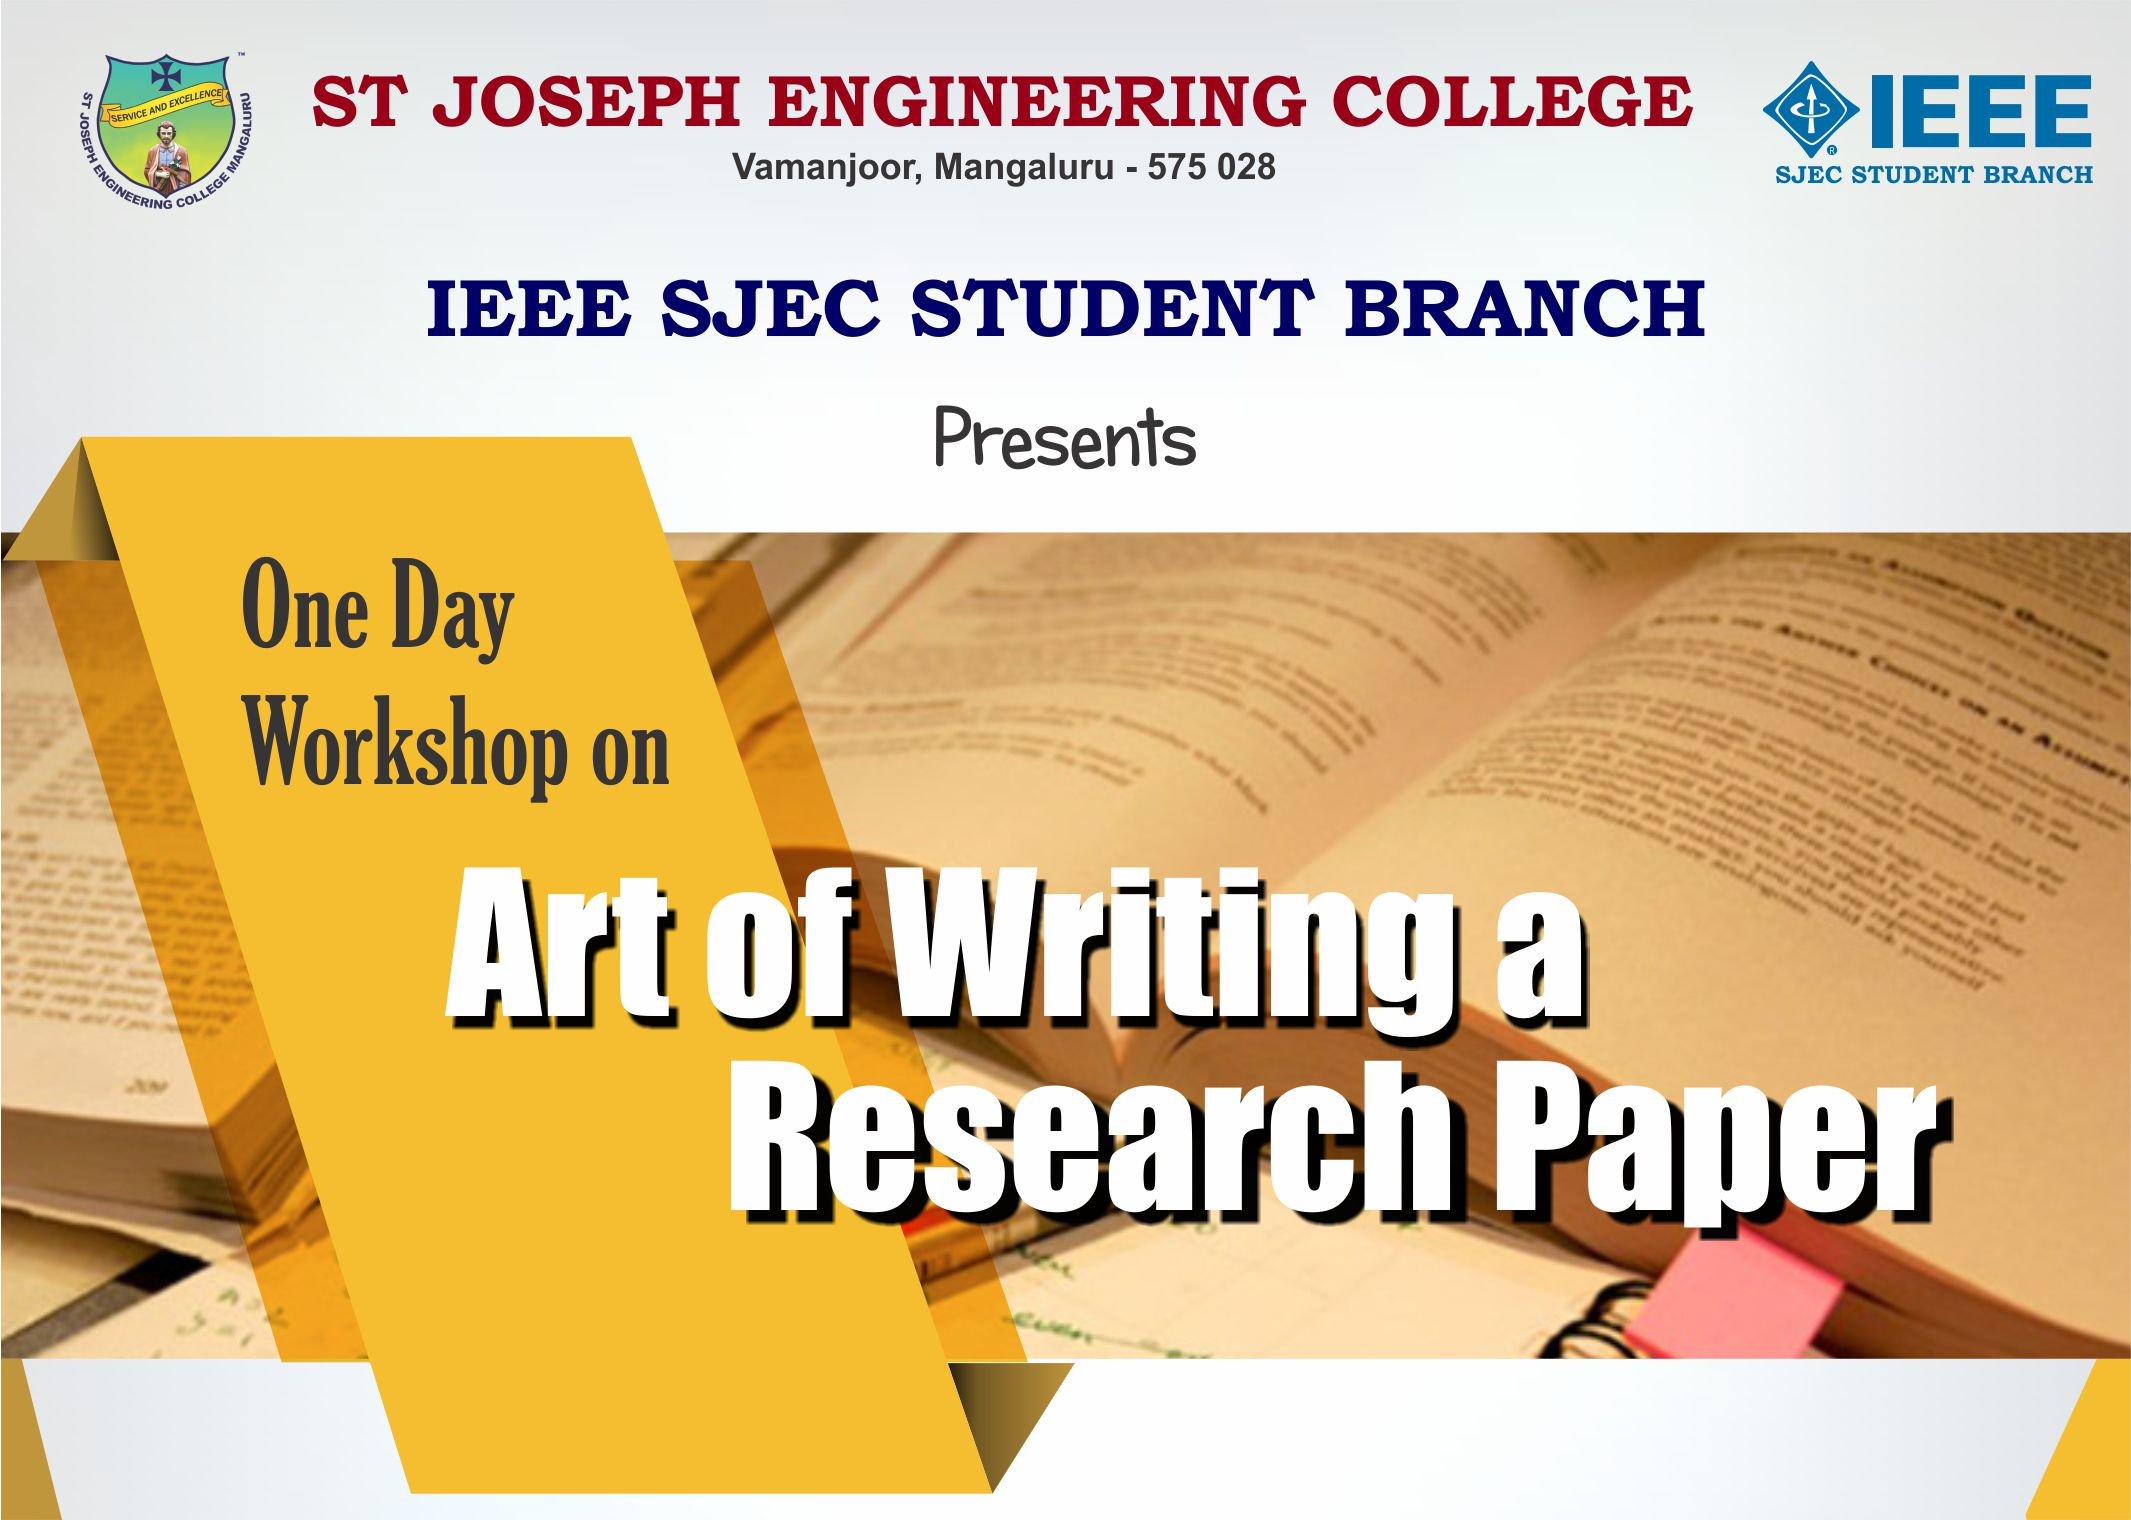 008 Workshop Banner Research Paper Writing Phenomenal The Papers A Complete Guide 16th Edition Pdf Free Handbook Scientific Full